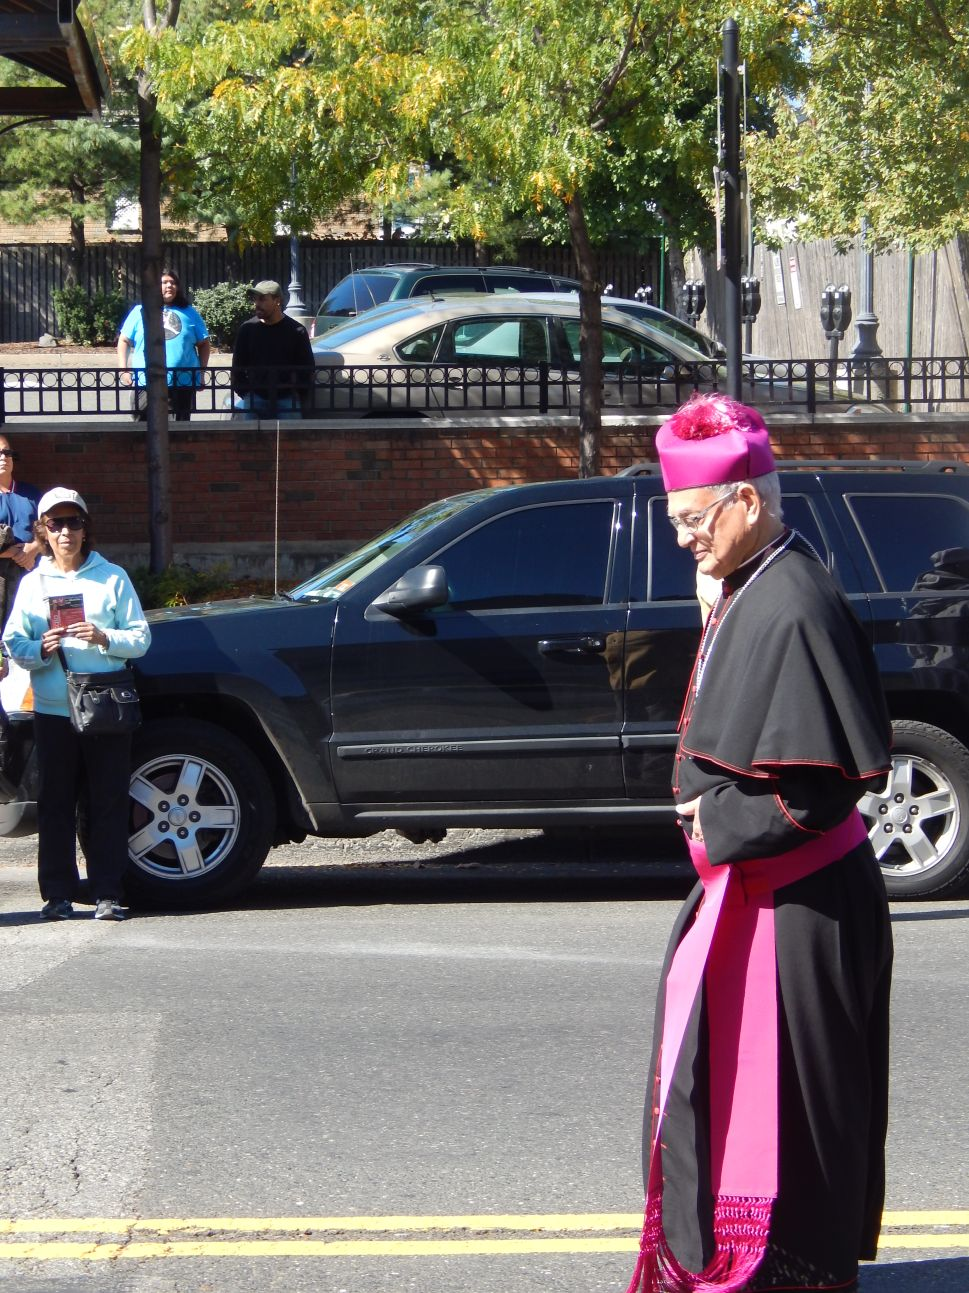 The Catholic Church and the Parade of New Jersey Politics